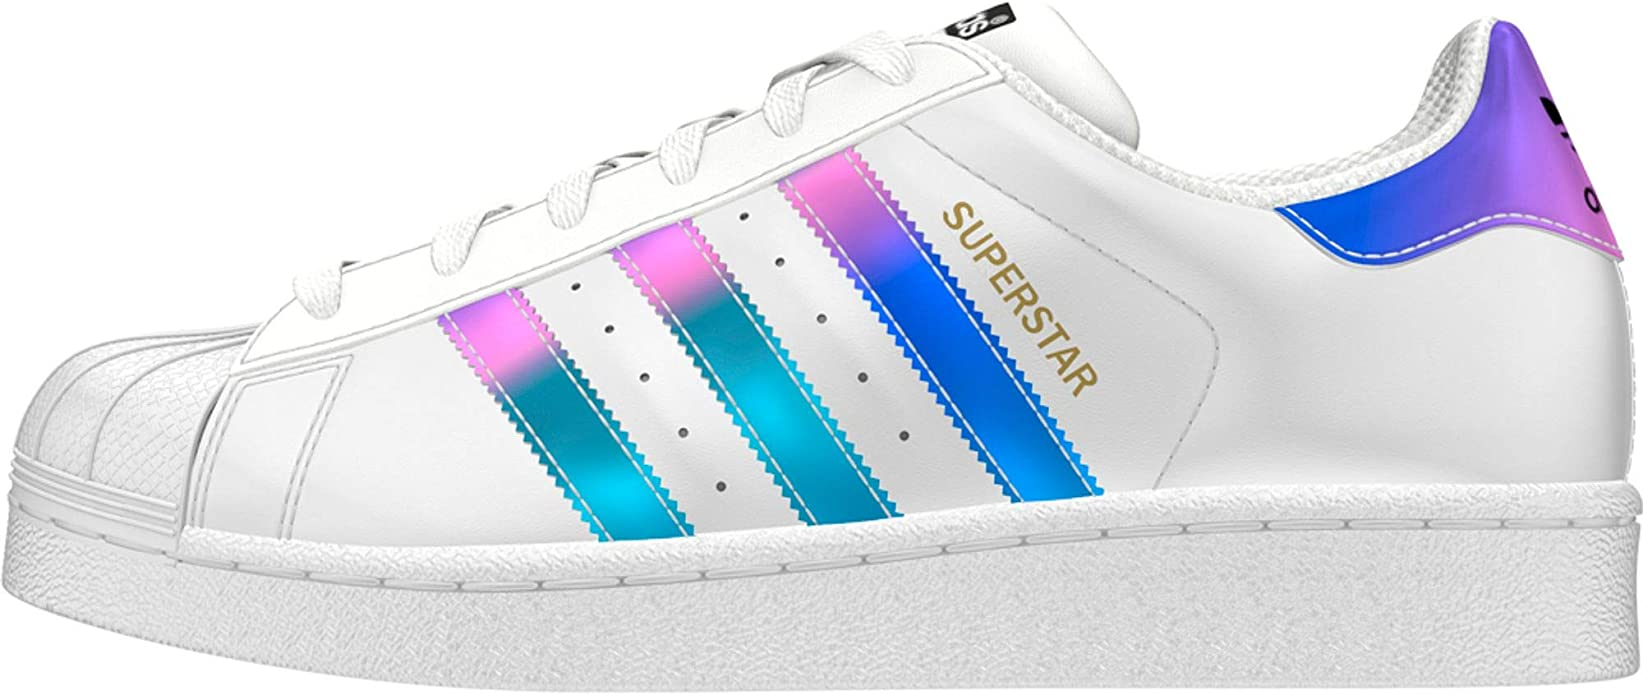 Adidas Superstar J Aq6278 Color Silver White Size 4 5 Amazon Ca Shoes Handbags